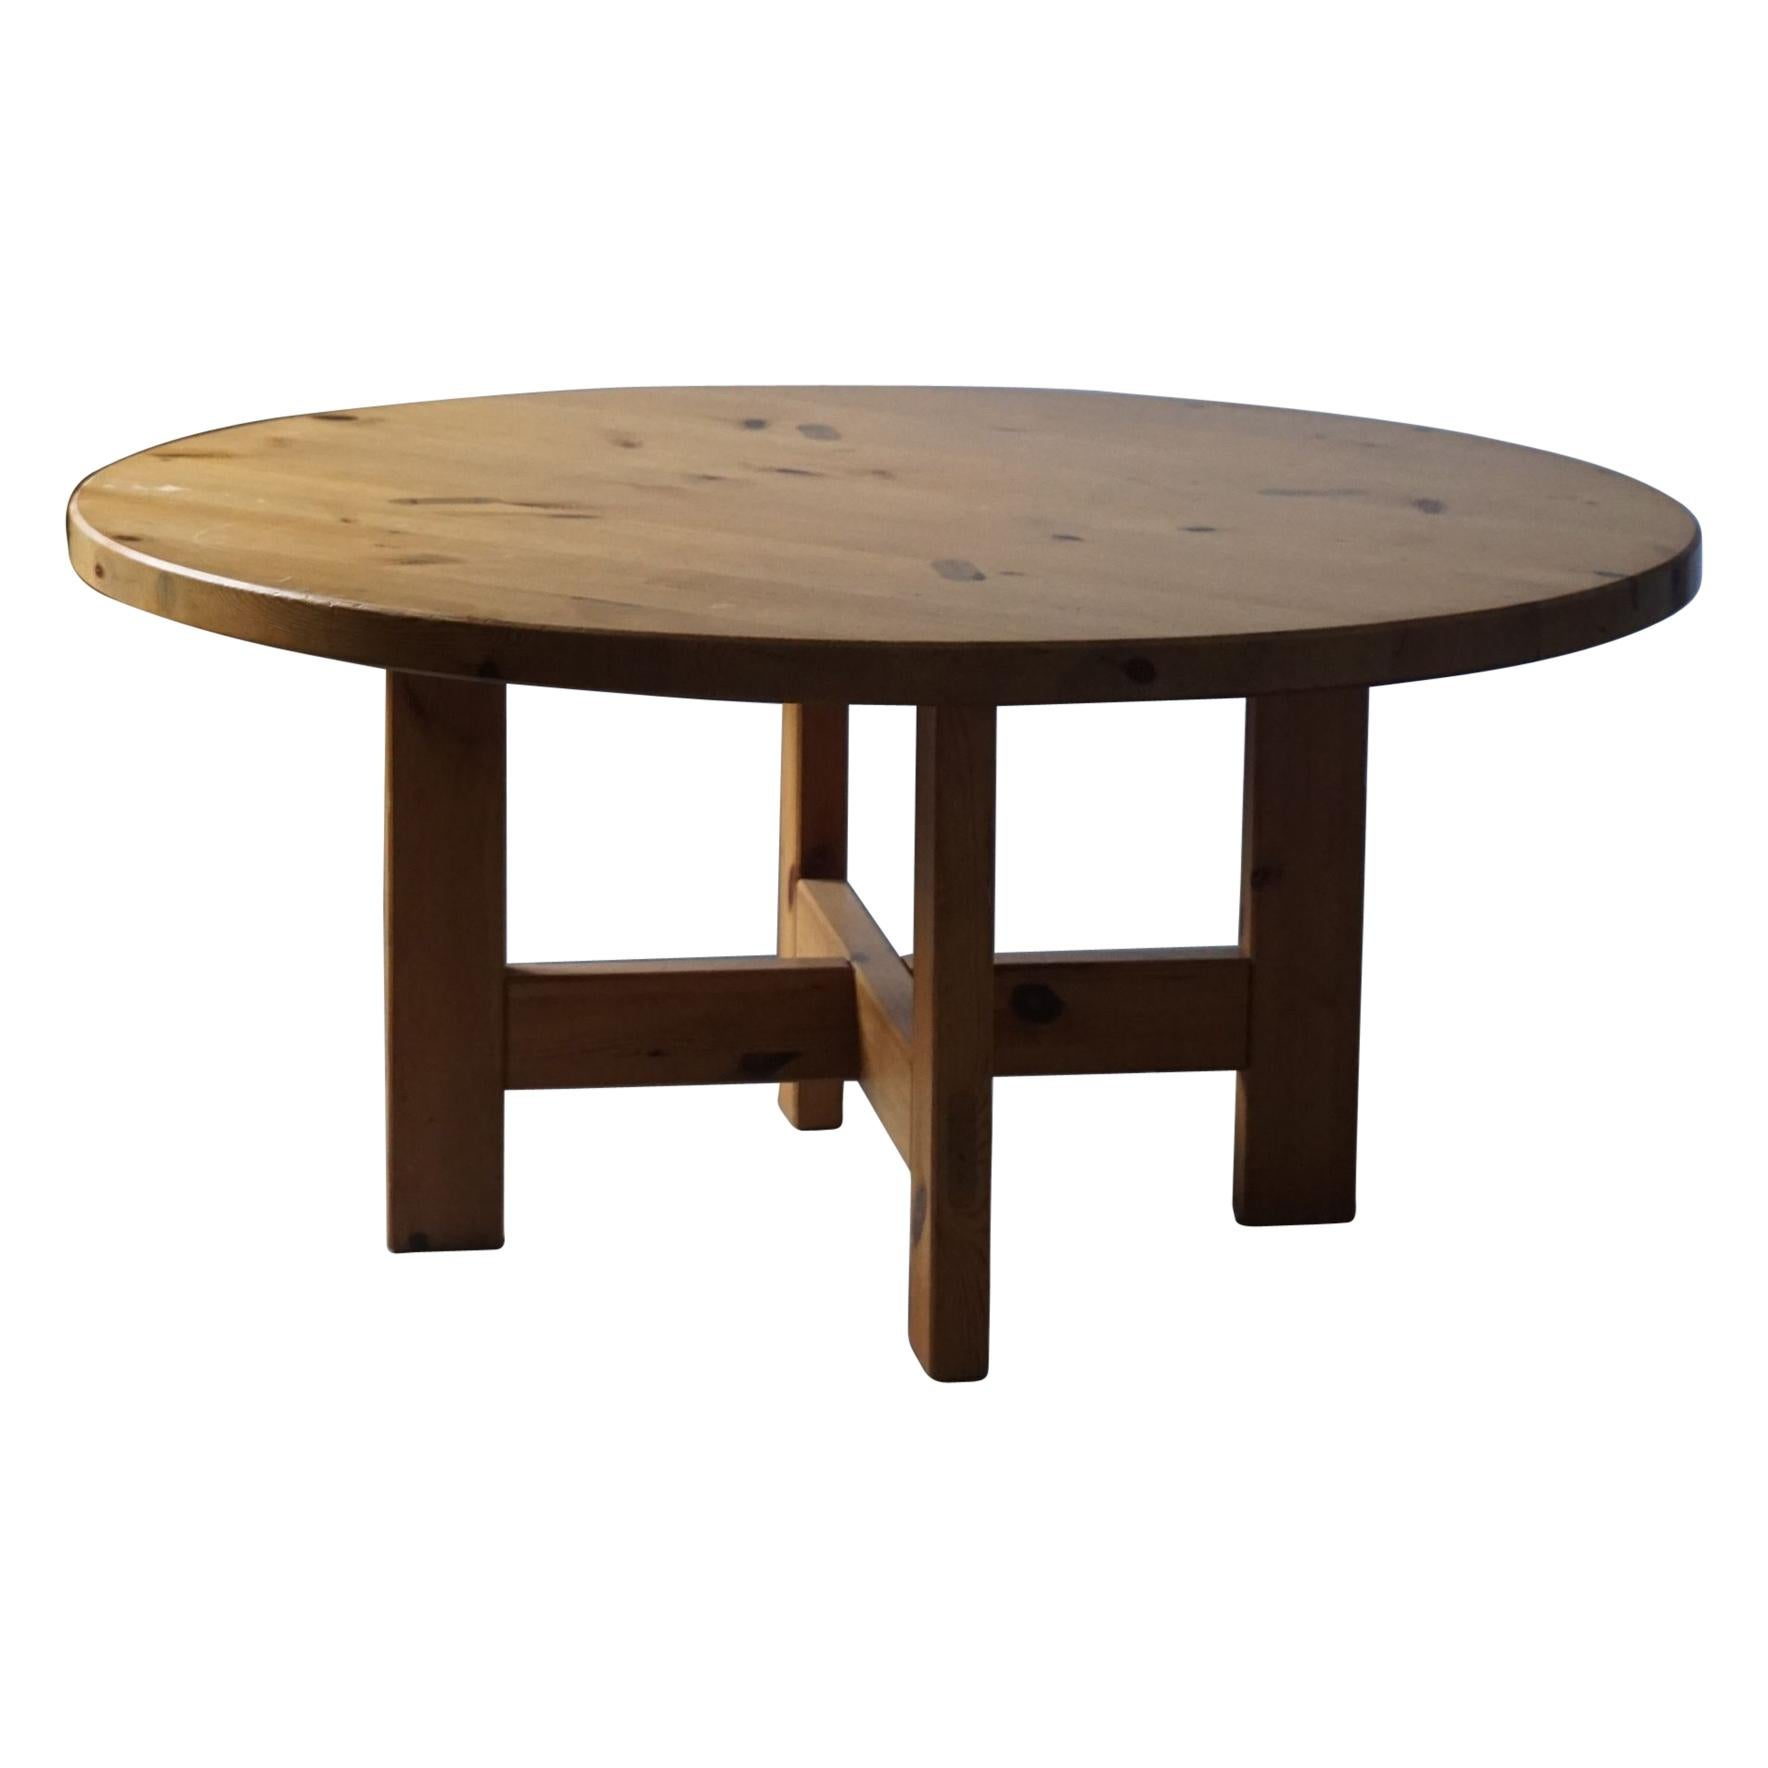 Model RW 152 Pine Dining Table by Roland Wilhelmsson for Karl Andersson & Søn